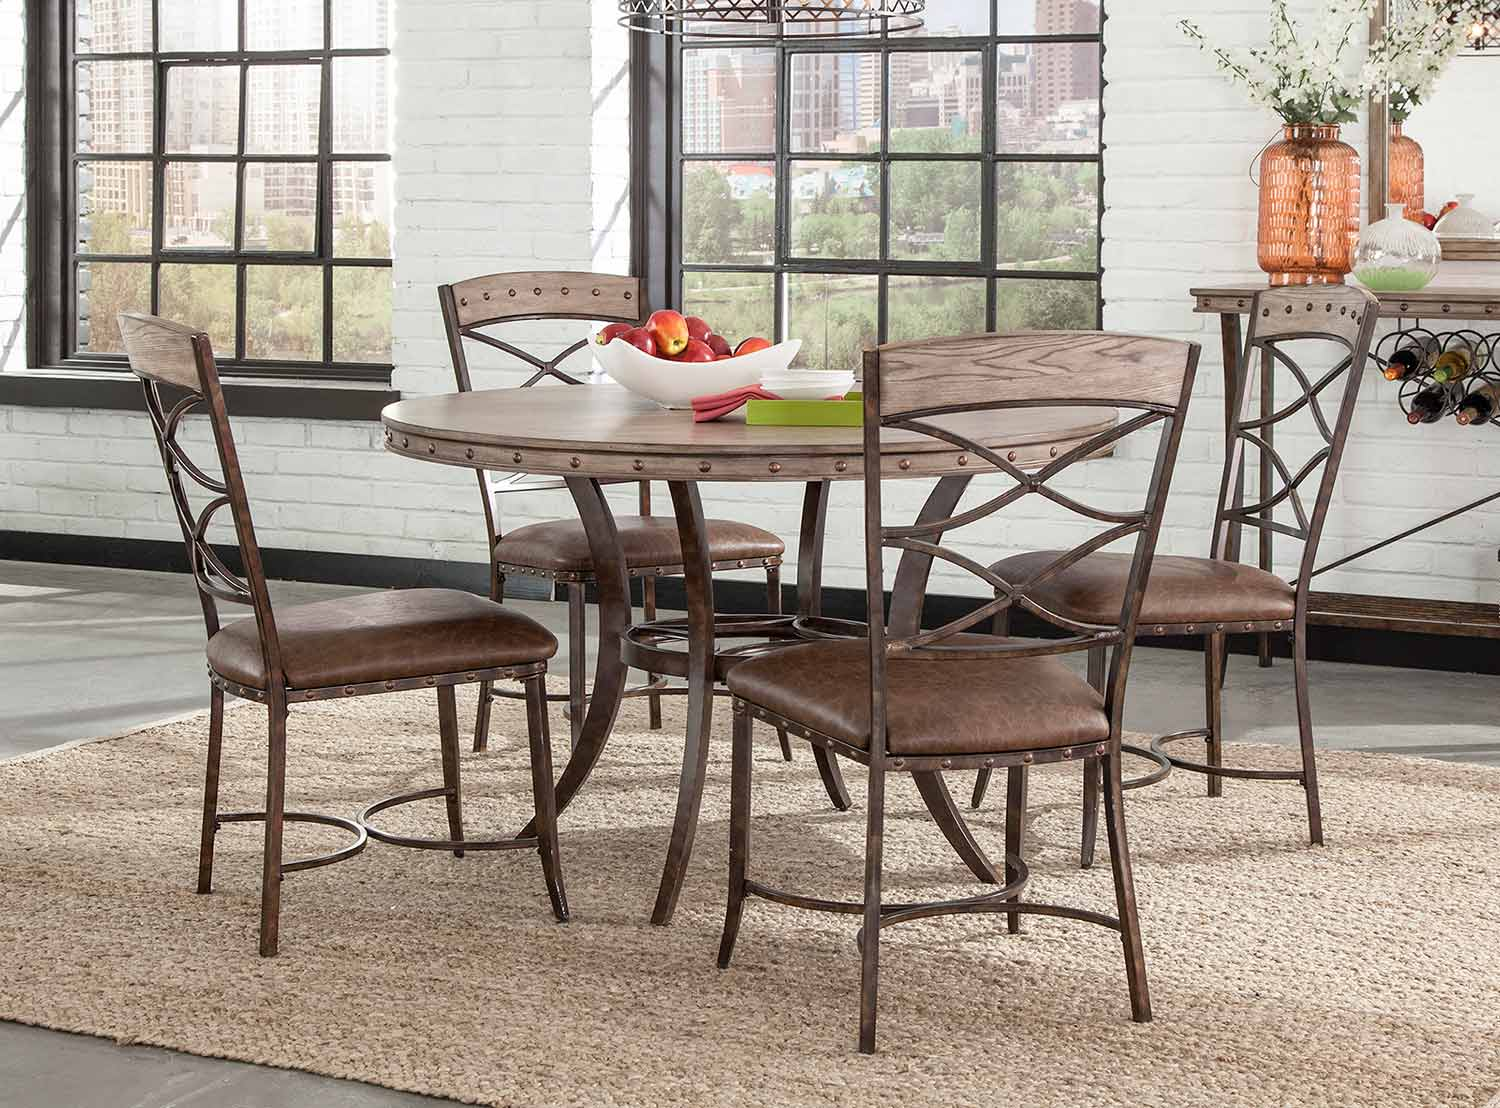 Hillsdale Emmons 5-Piece Round Dining Set - Washed Gray